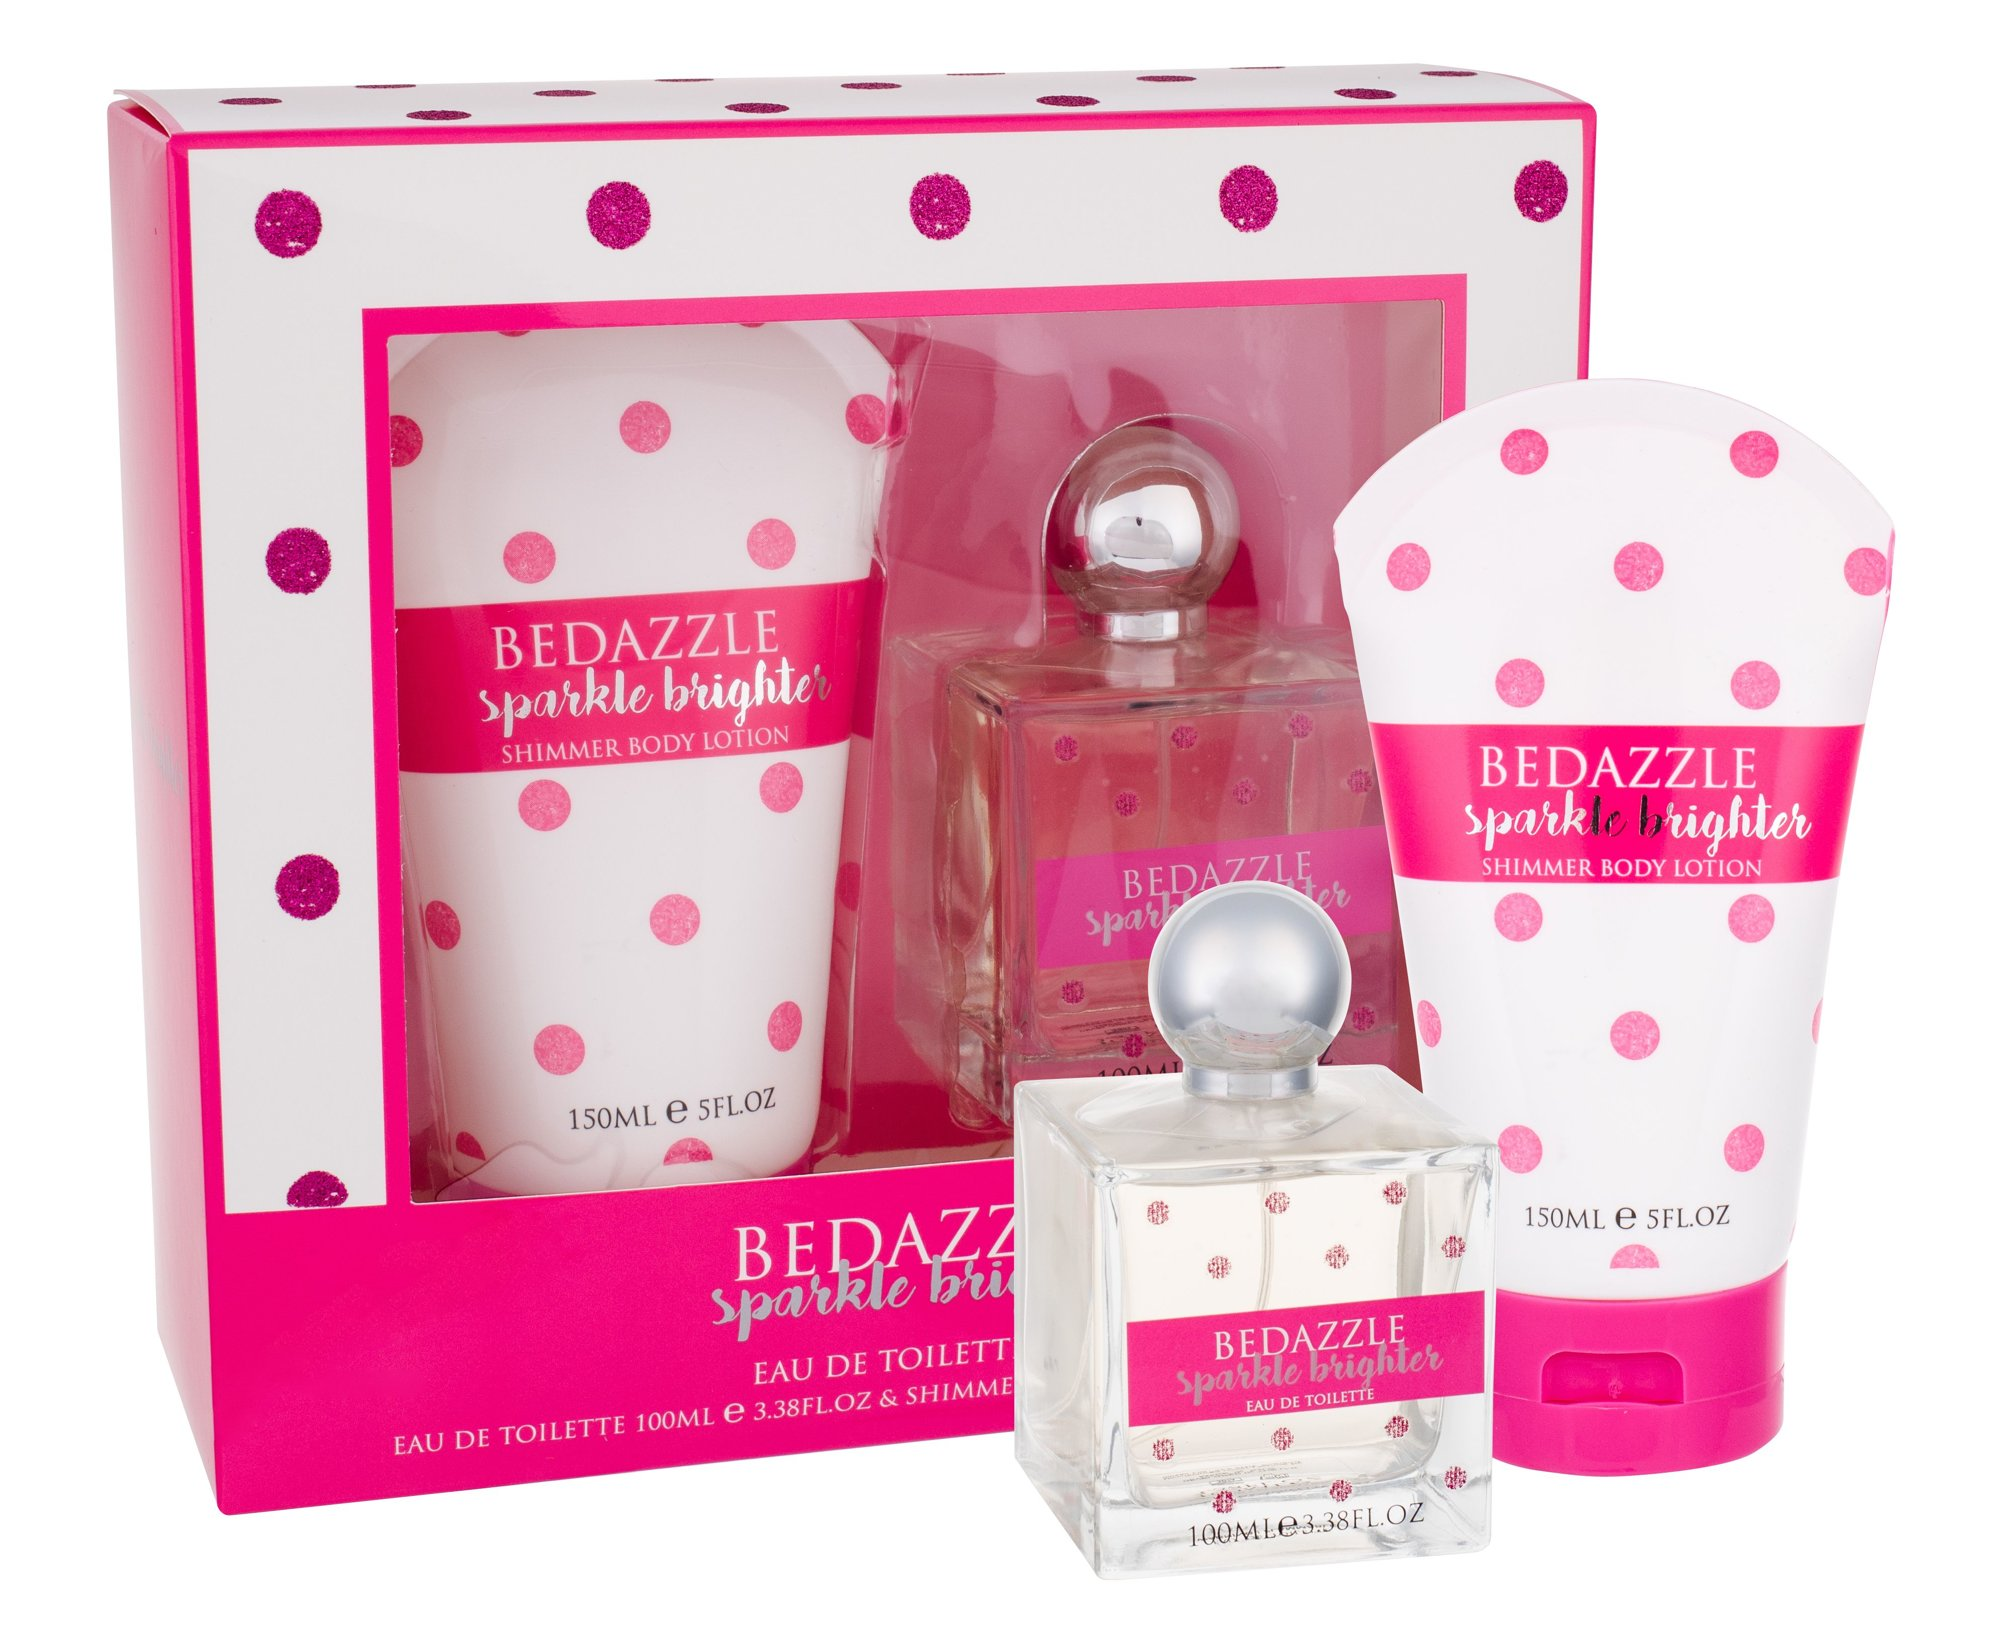 Bedazzle Sparkle Brighter EDT 100ml